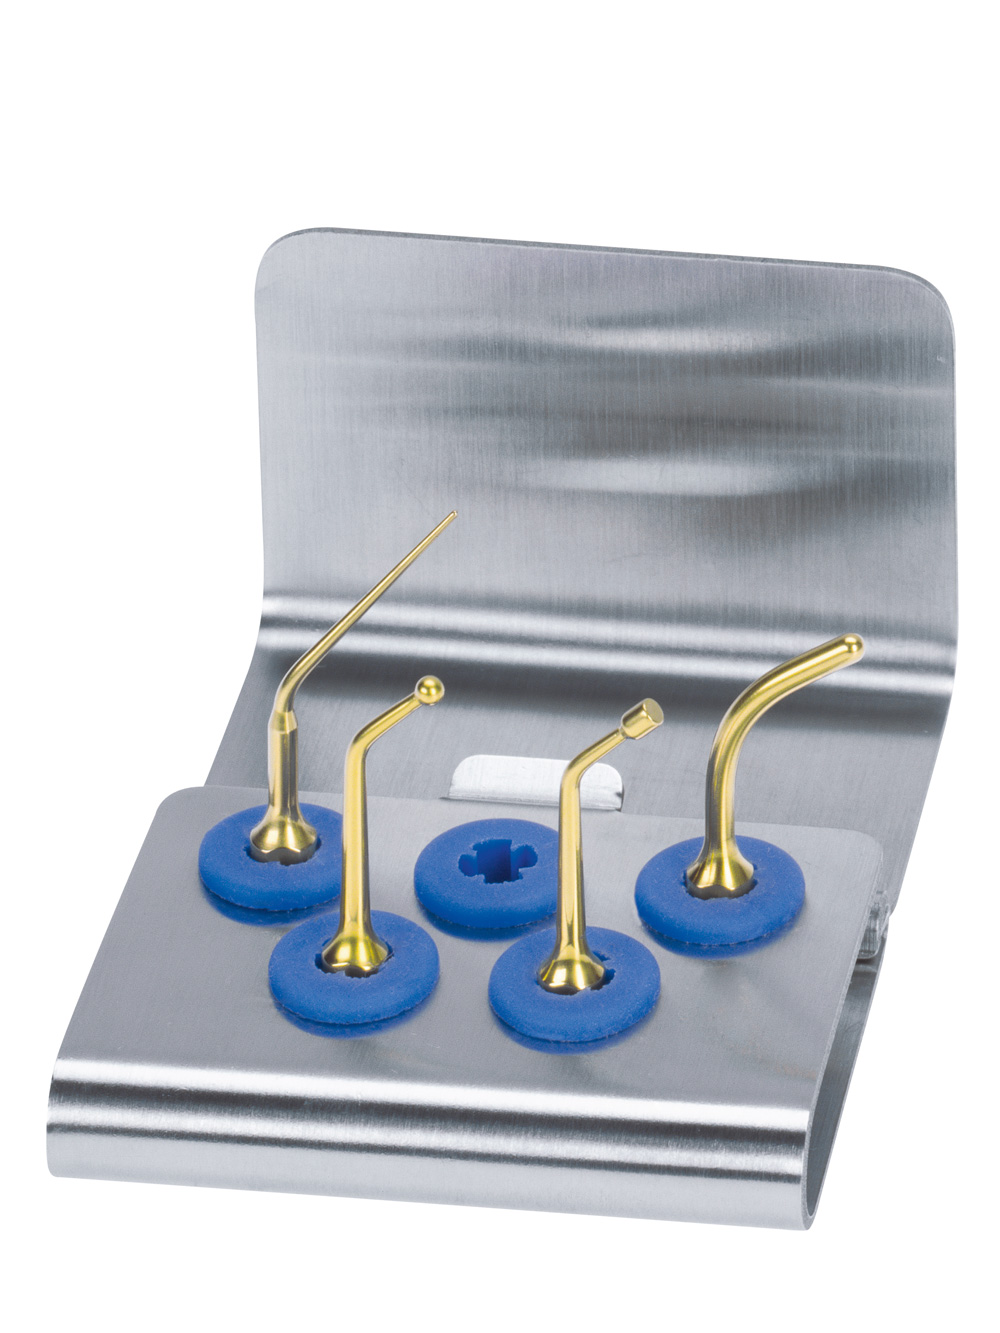 mectron ultrasound kit restorative